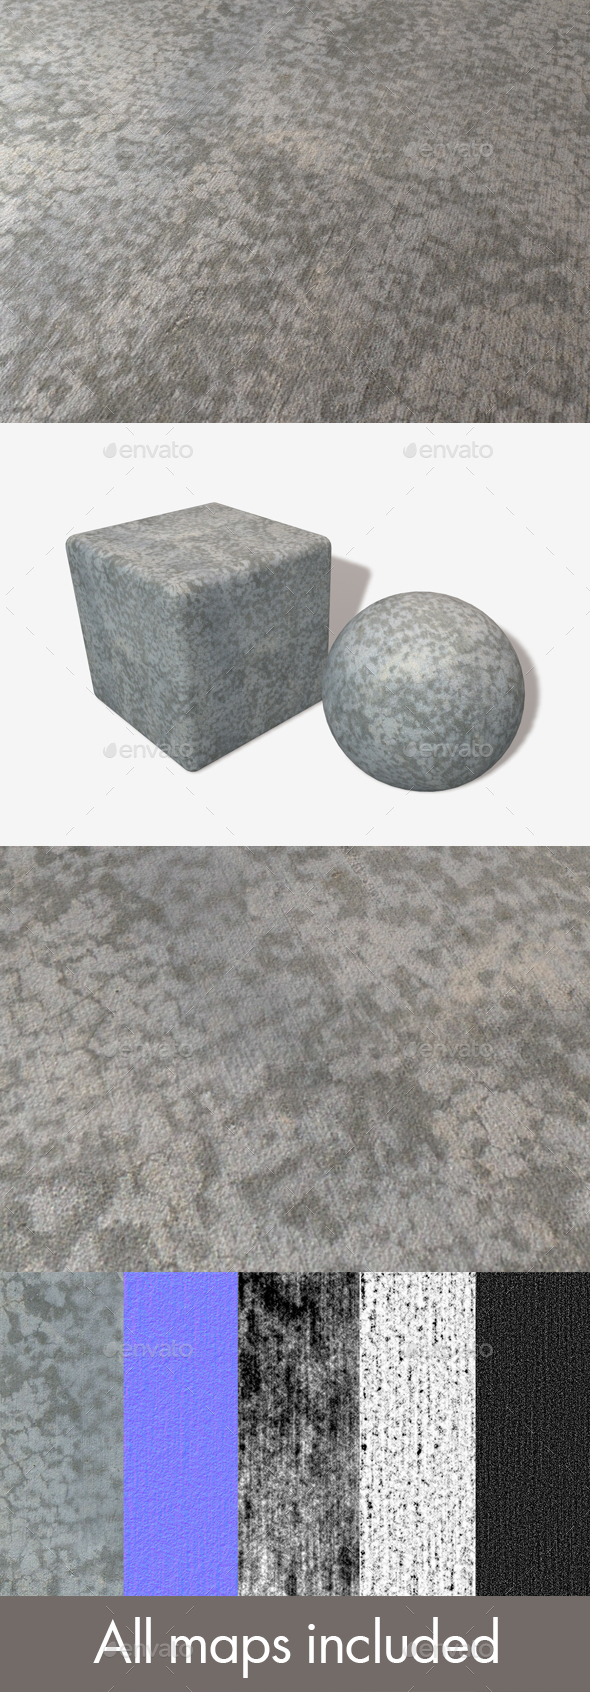 3DOcean Drying Concrete Seamless Texture 19671427